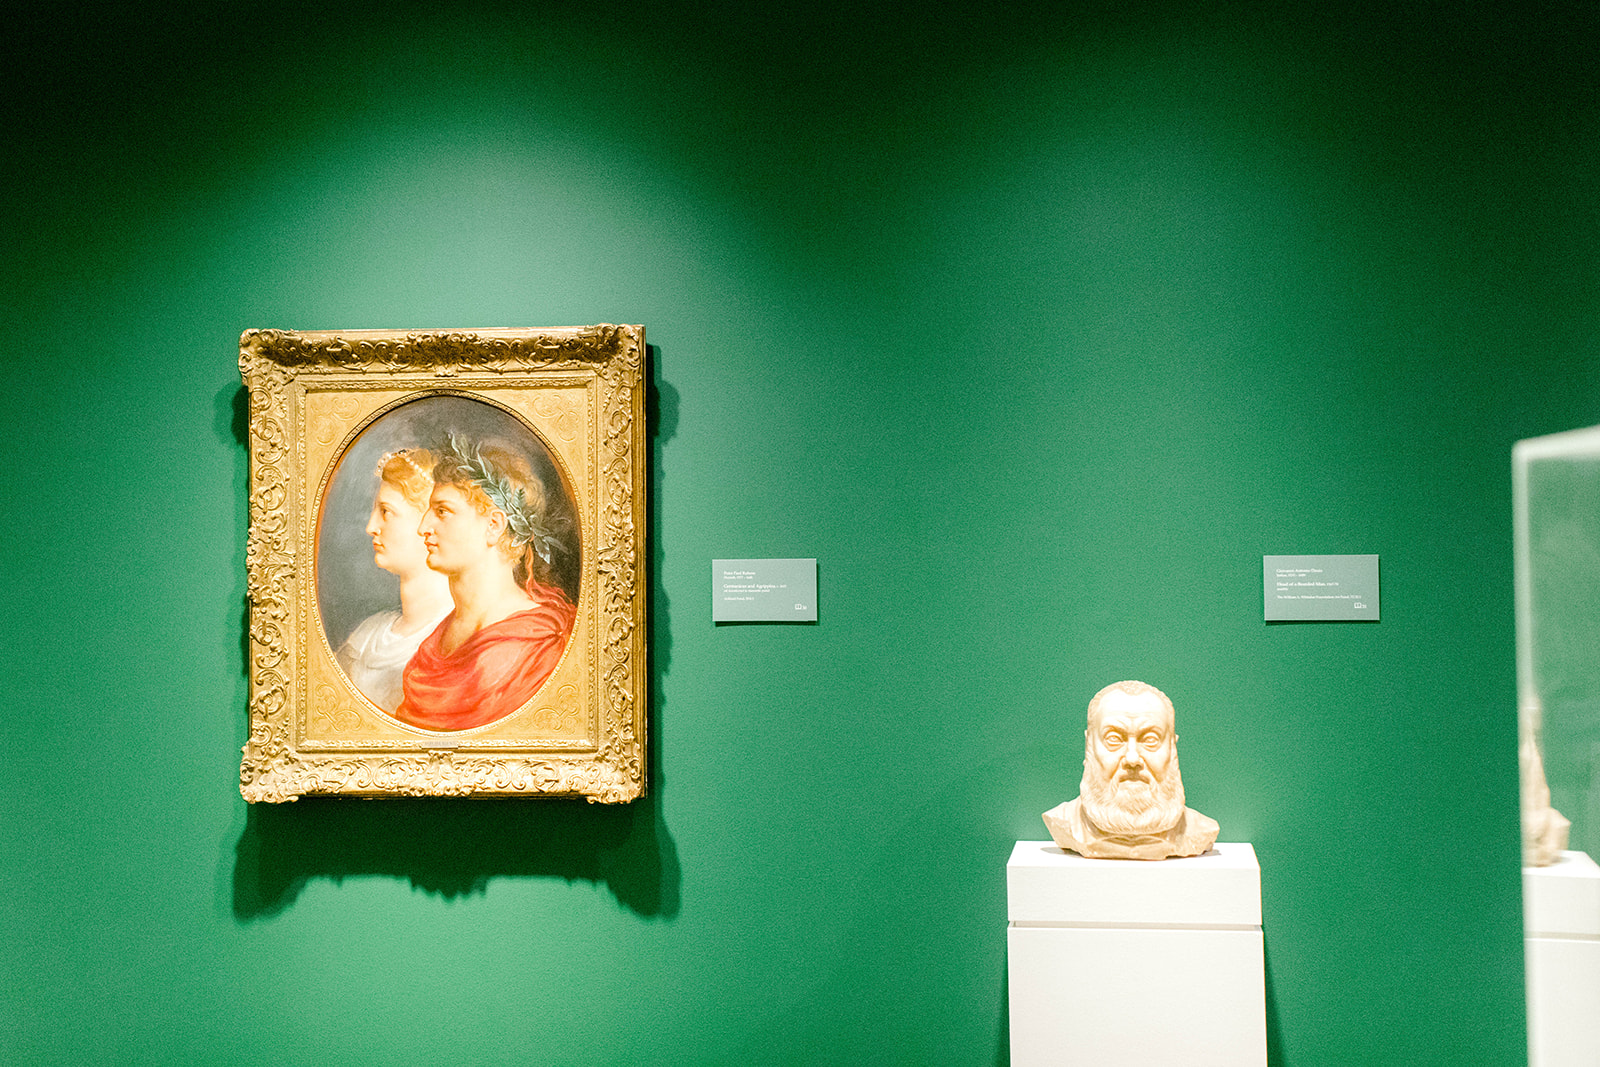 A painting of two people in profile and a marble bust of a man's head on view in an art gallery